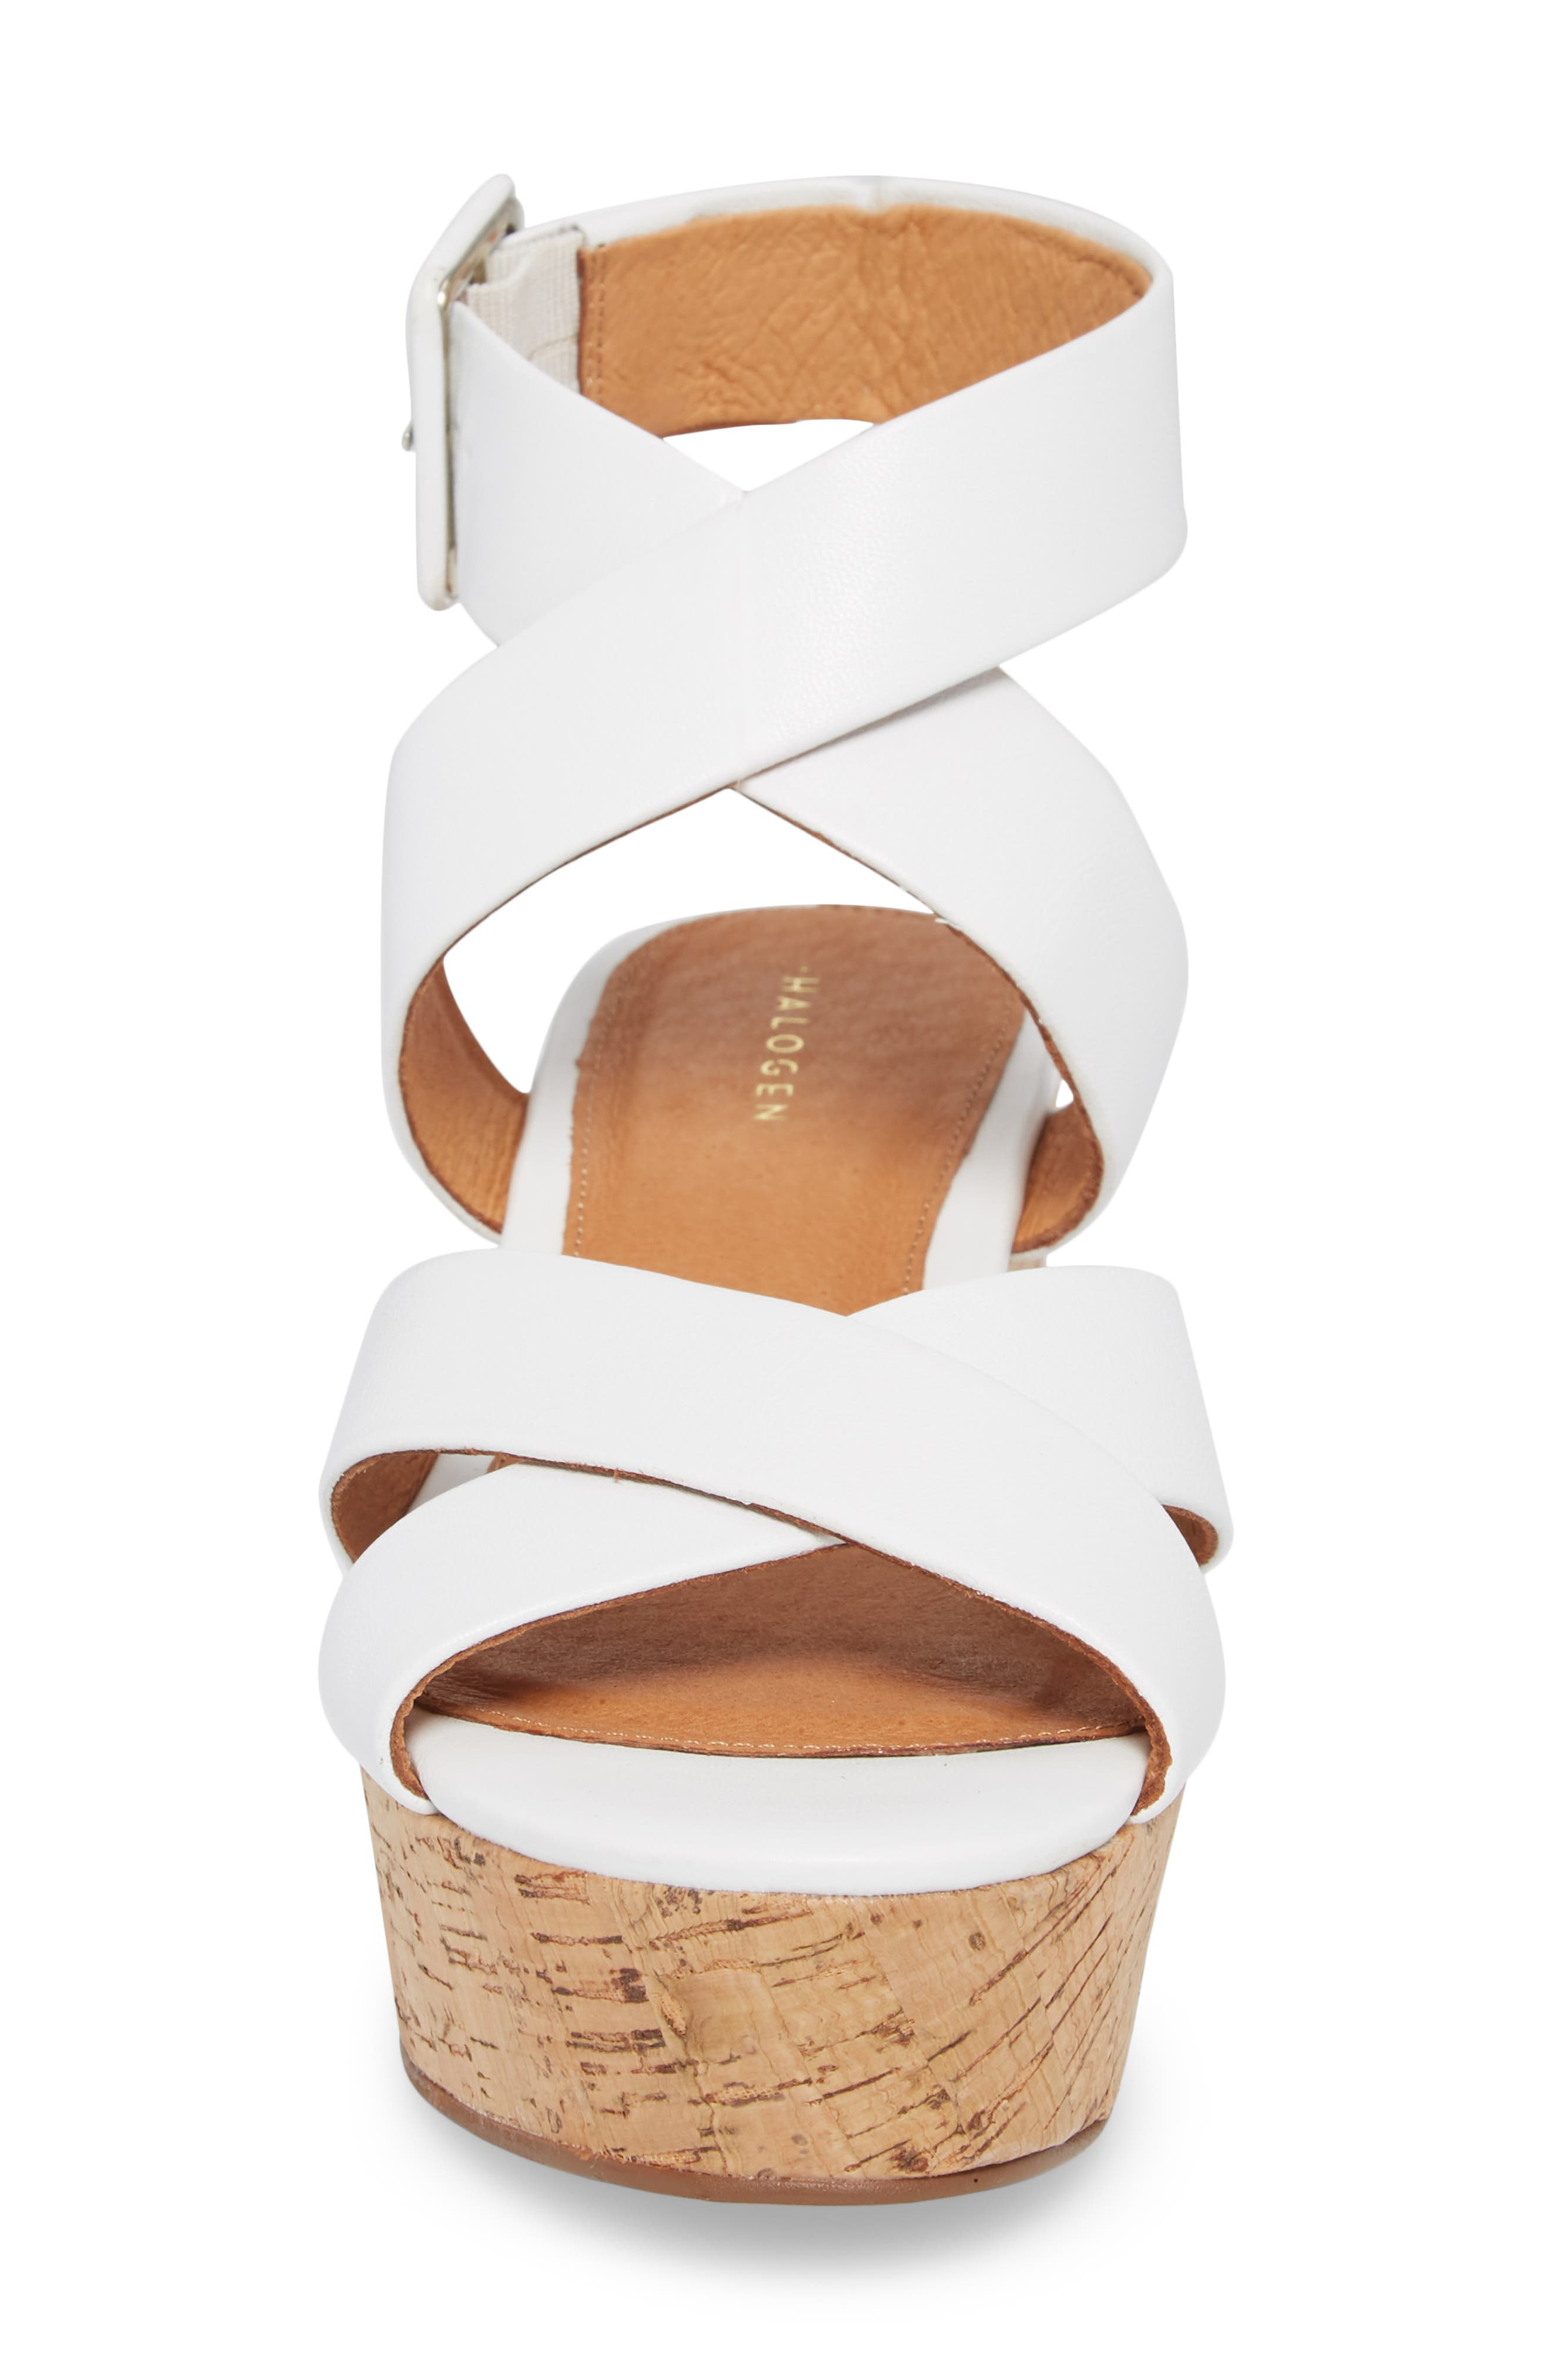 Evie Platform Wedge Sandal,                             Alternate thumbnail 4, color,                             White Leather